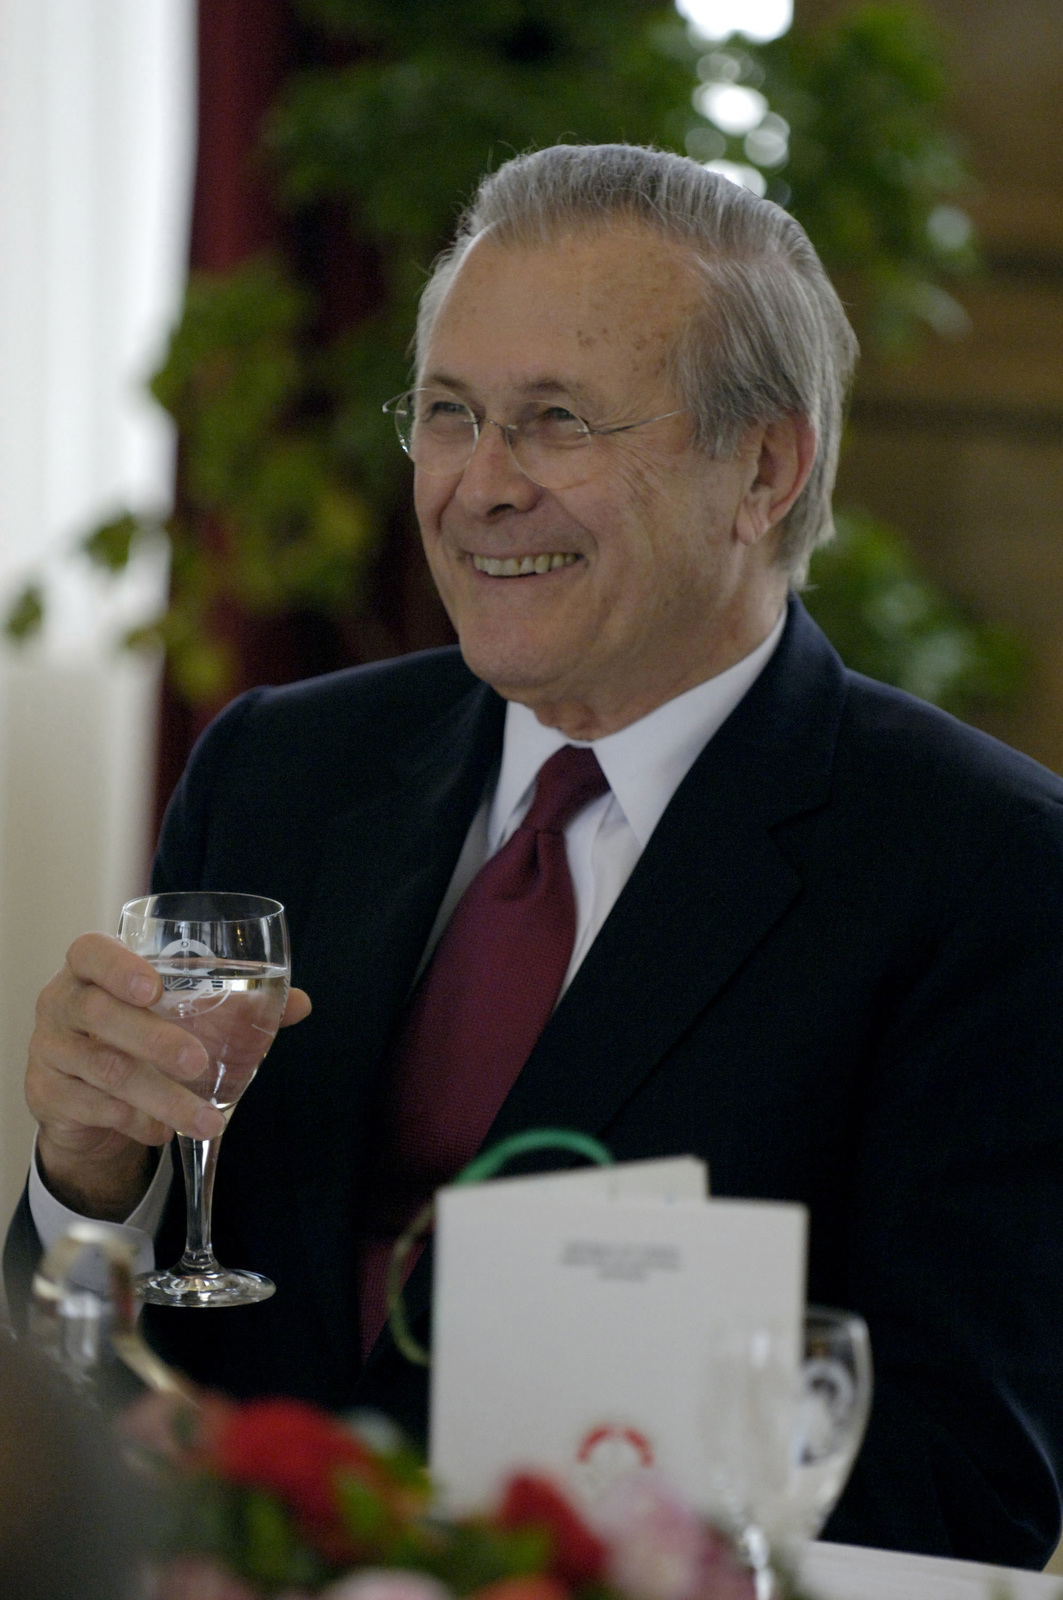 The Honorable Donald H. Rumsfeld, U.S. Secretary of Defense, listens to welcoming comments during a luncheon for him hosted by Tunisian Minister of Defense Kamel Morjane during his arrival in Tunis, Tunisia, on Feb 11, 2006. Sec. Rumsfeld is on a tour of numerous North African countries after attending the North Atlantic Treaty Organization (NATO) Defense Minister Meeting in Italy.  (DoD photo by PETTY Officer 1ST Class Chad J. McNeeley) (Released)